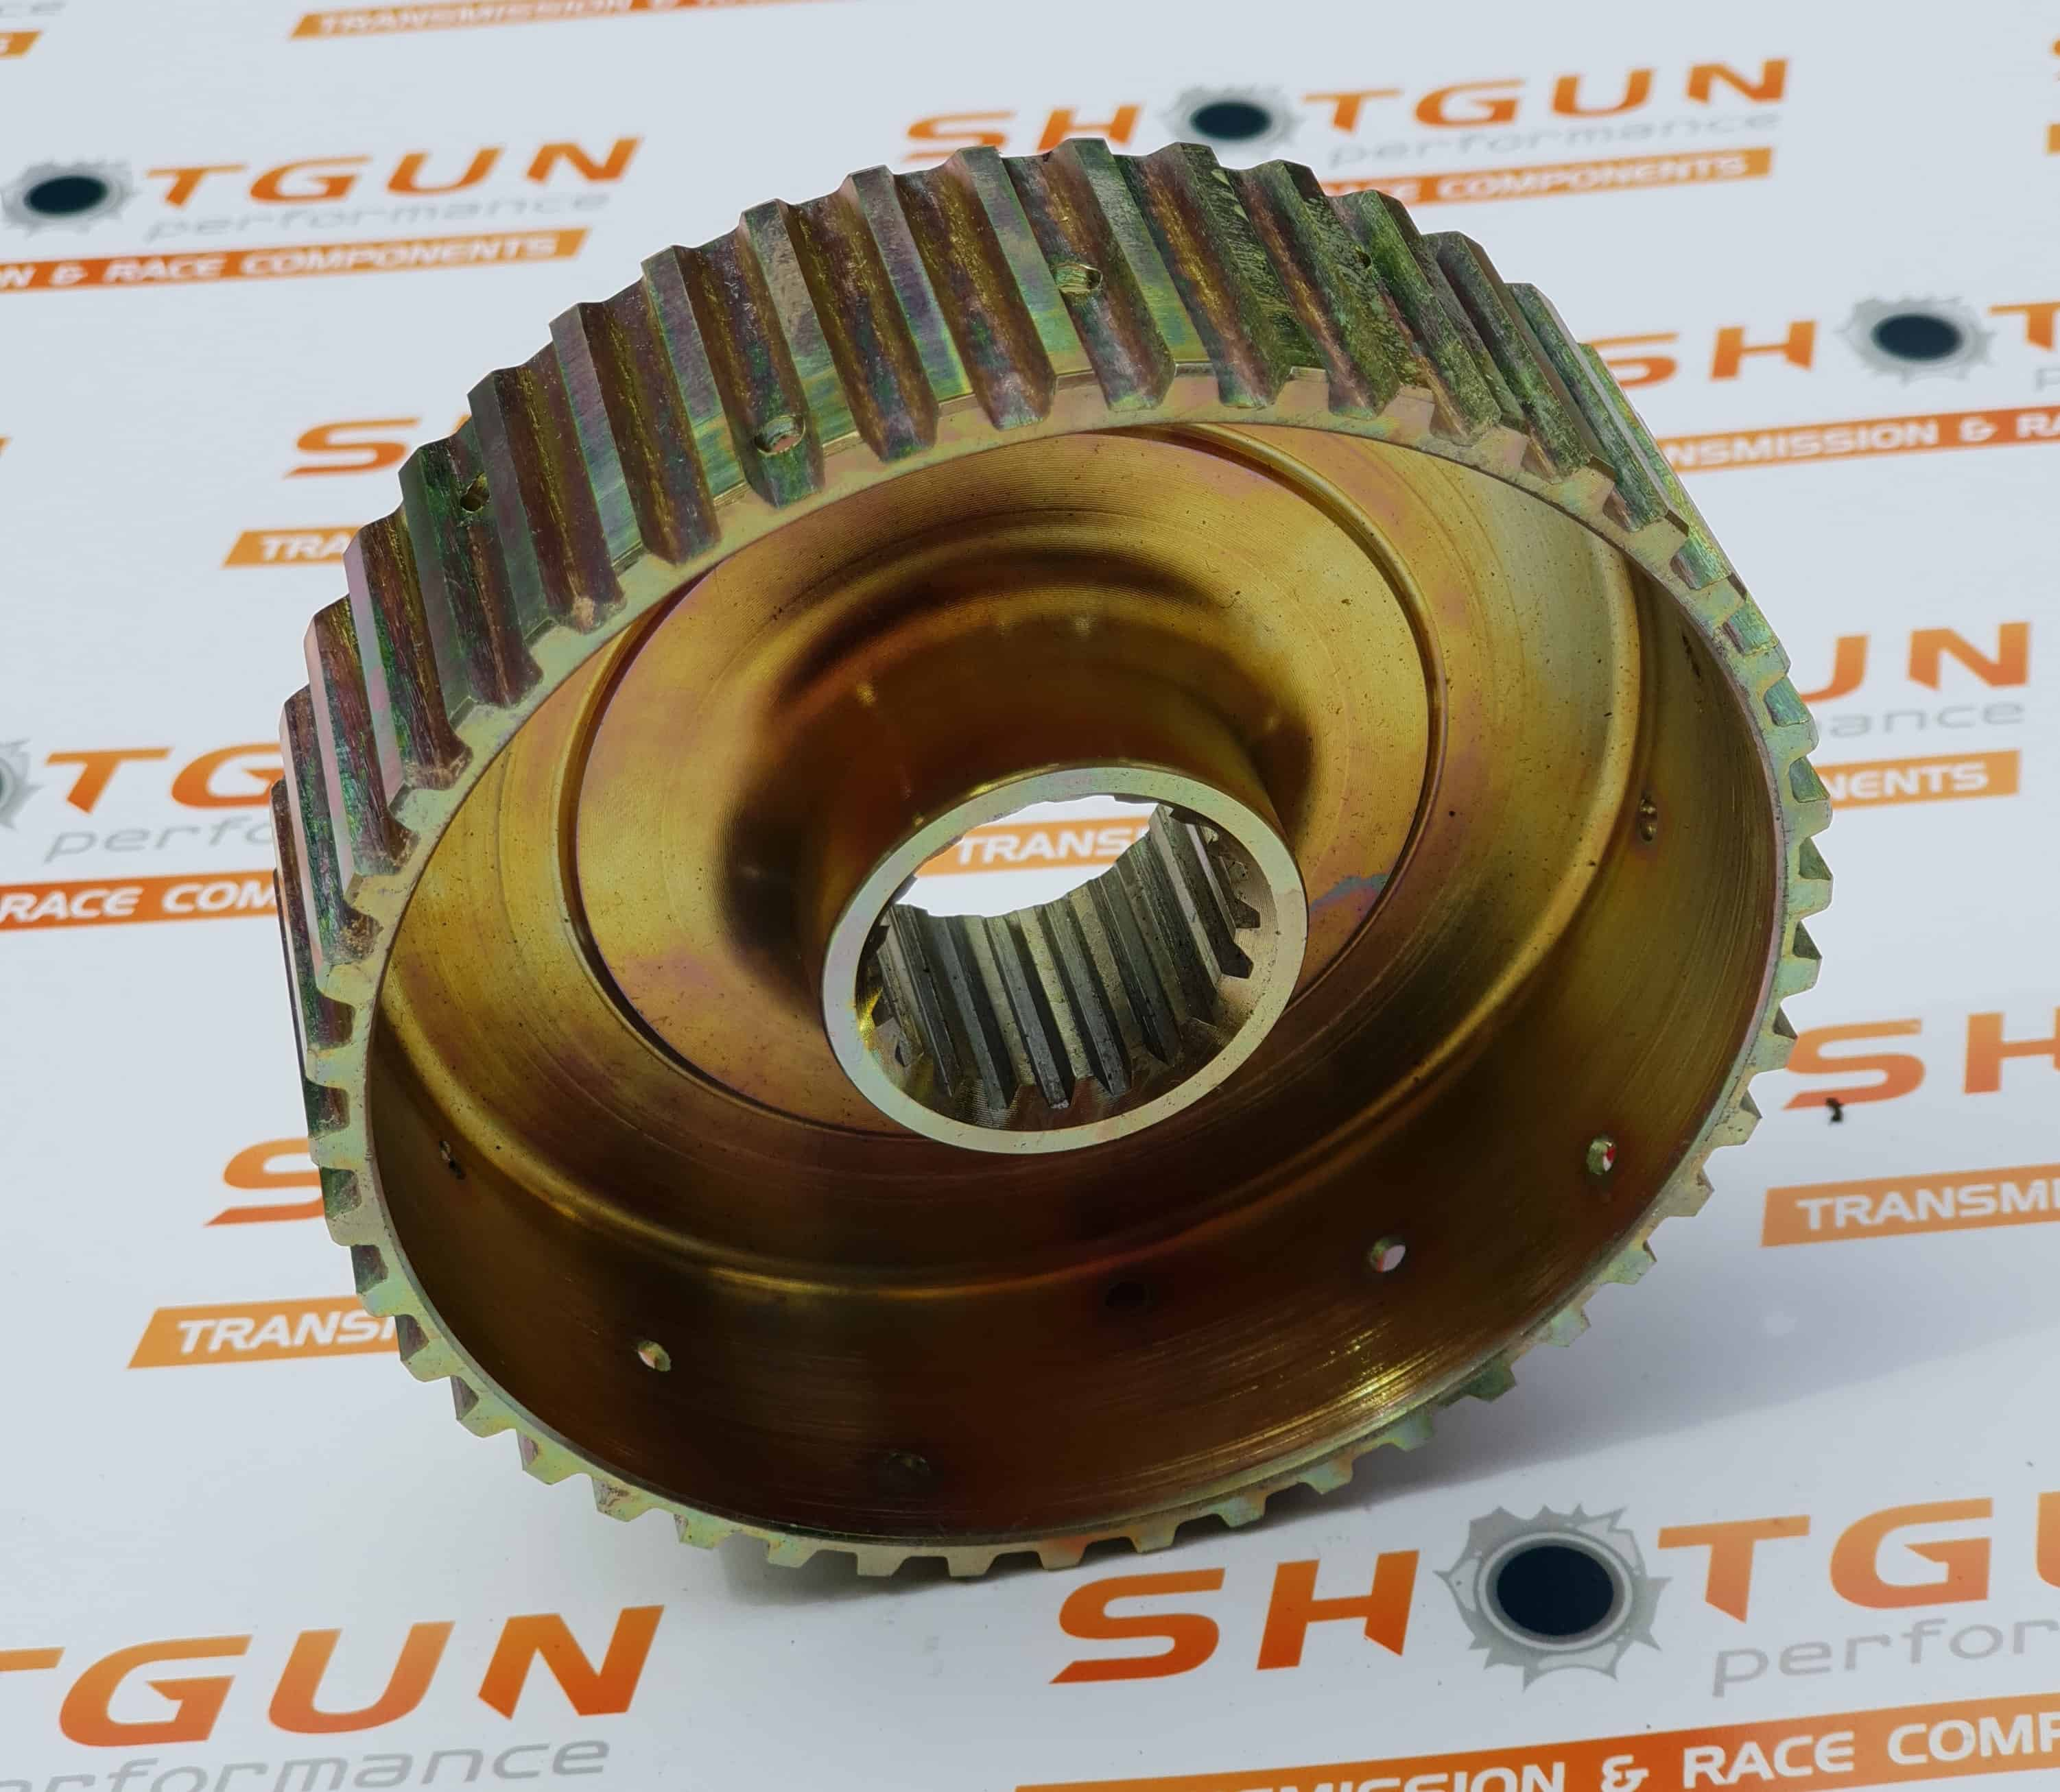 Powerglide Transmission Steel Strengthened High Gear Clutch Hub Direct Drive